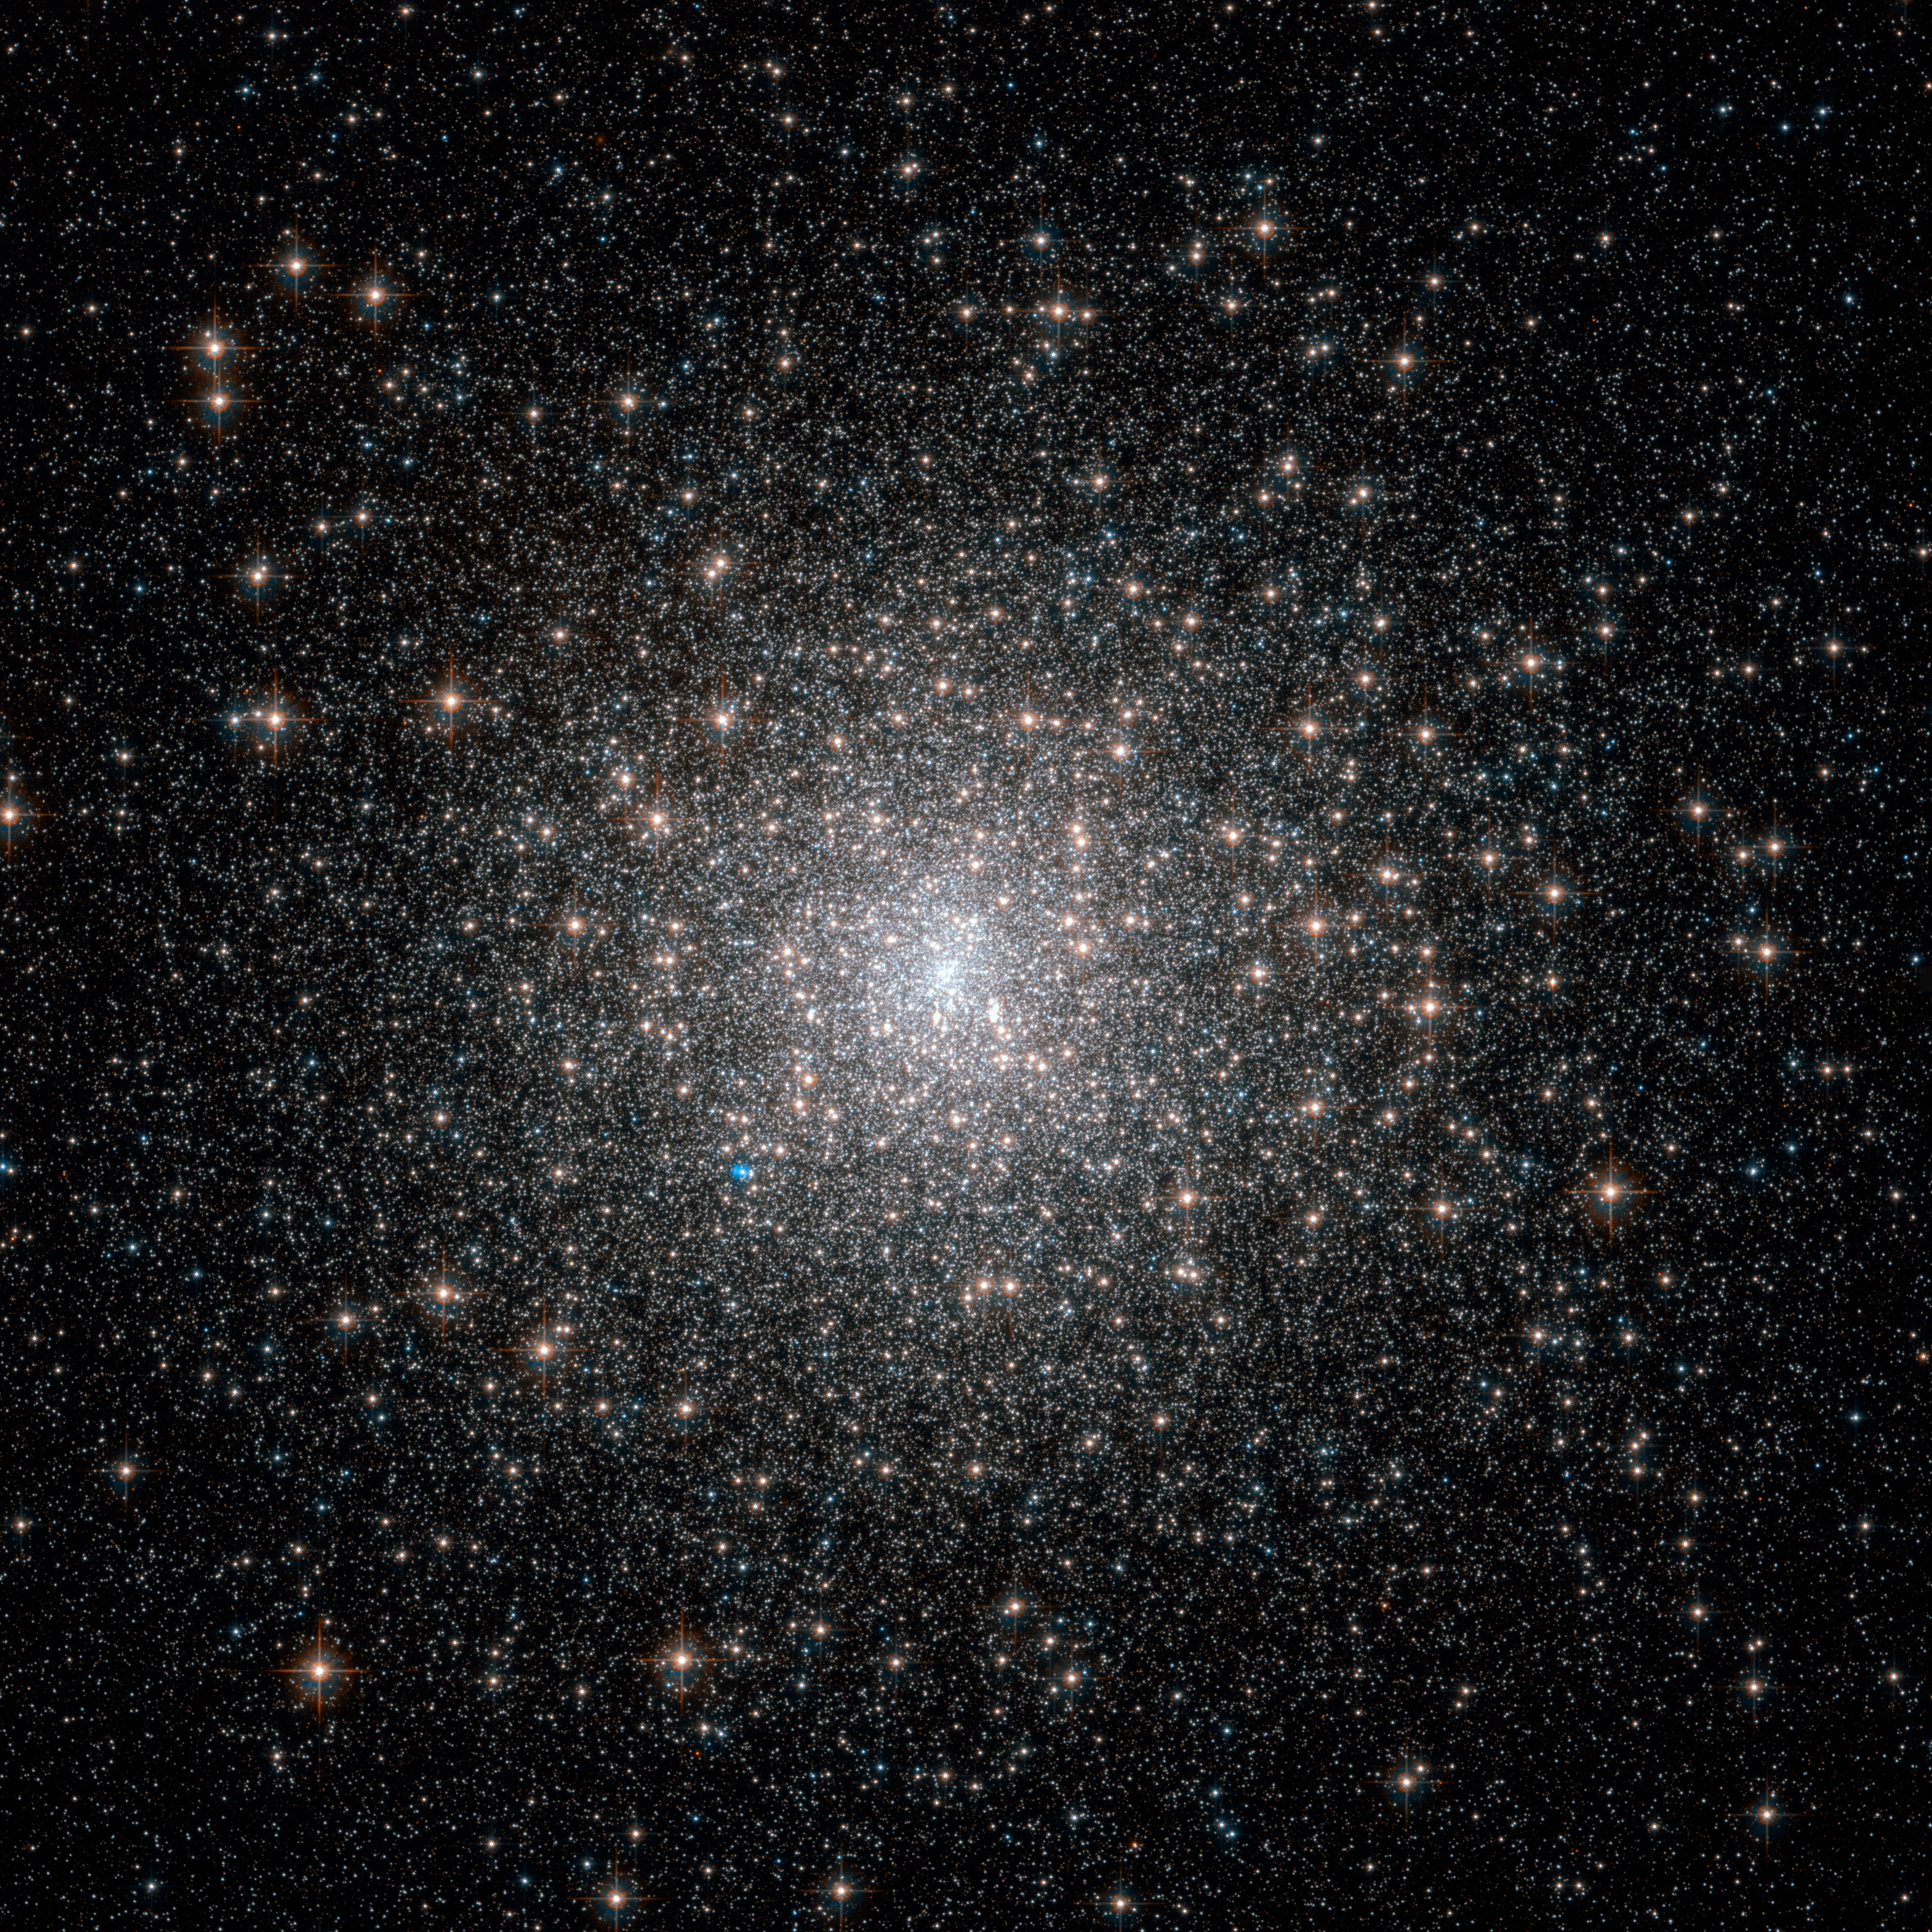 APOD: 2011 May 3 - Globular Cluster M15 from Hubble